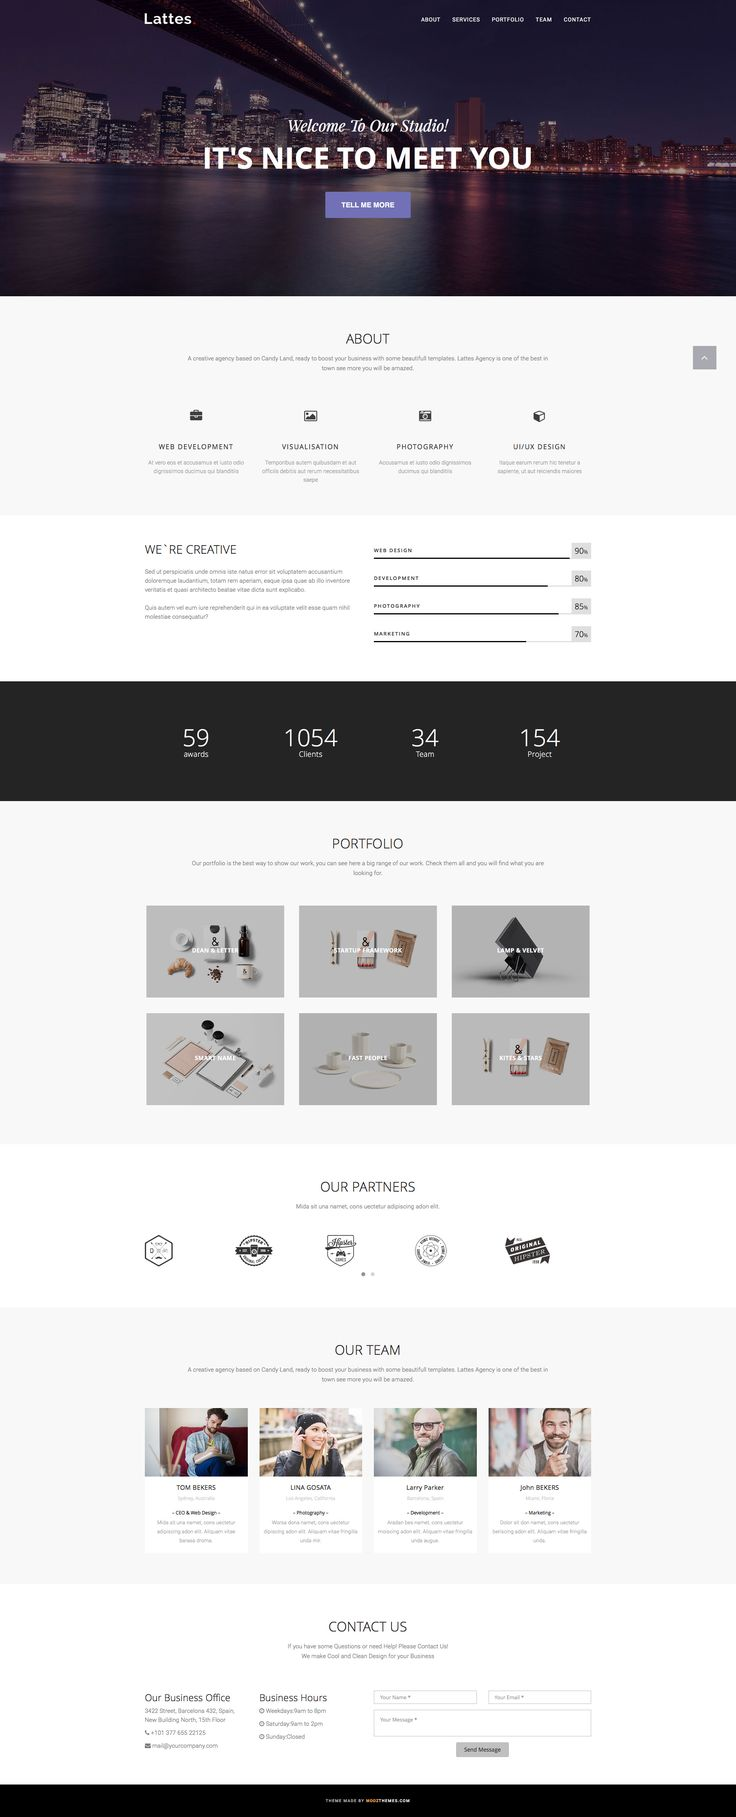 Best 23 bootstrap templates images on Pinterest | Free html ...